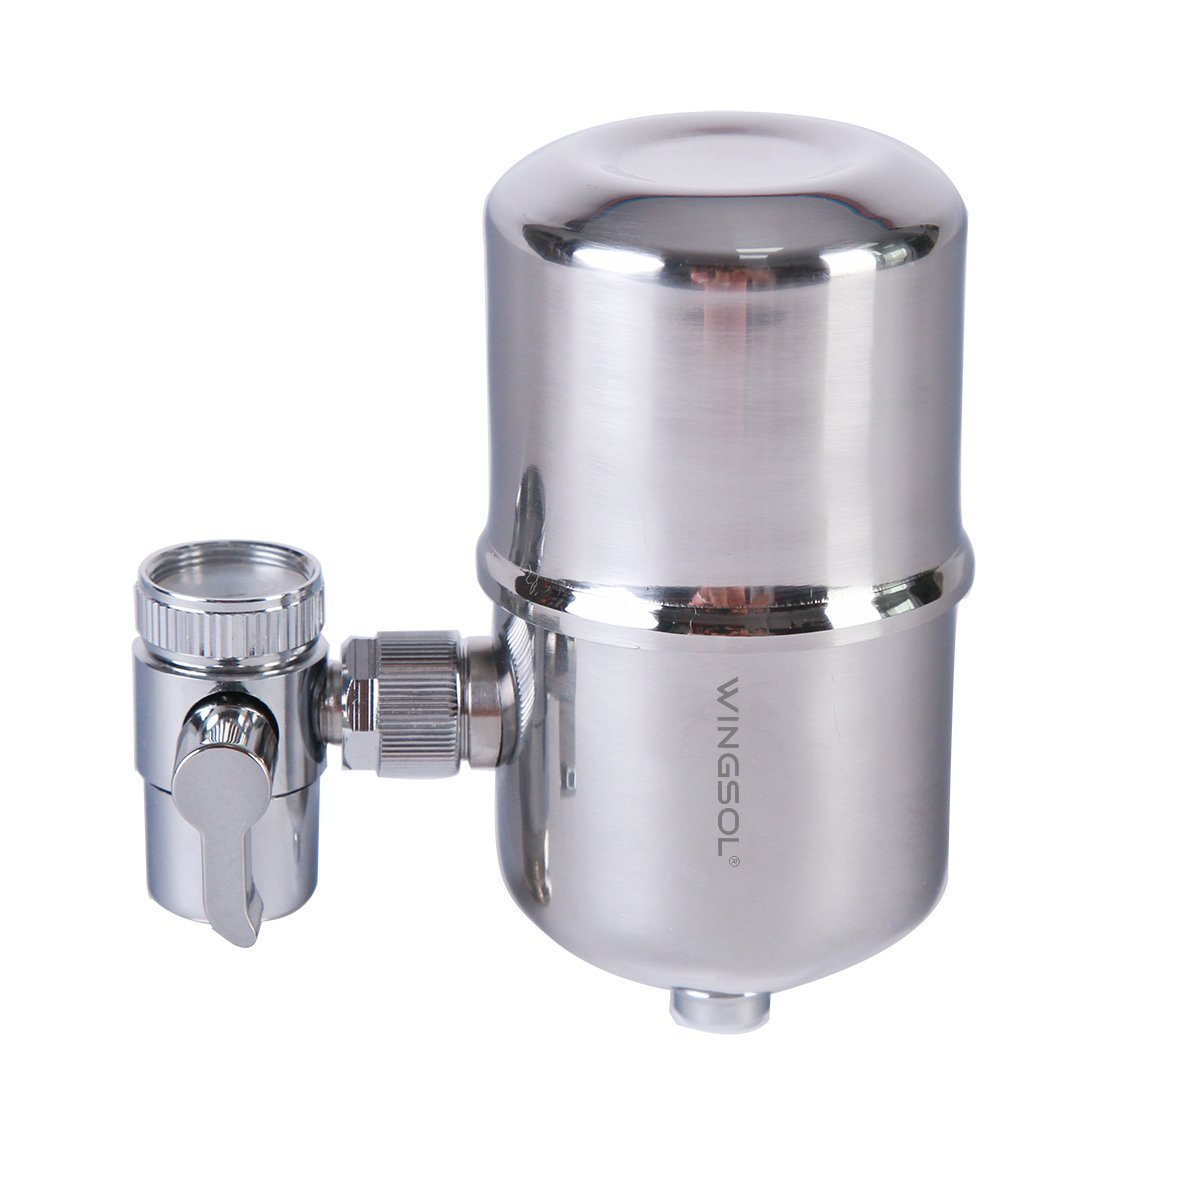 Water filter, Wingsol Healthy Faucet Water Filter System - Tap Water Purifier Filter Water Purifying Device for Home Kitchen with stainless-steel